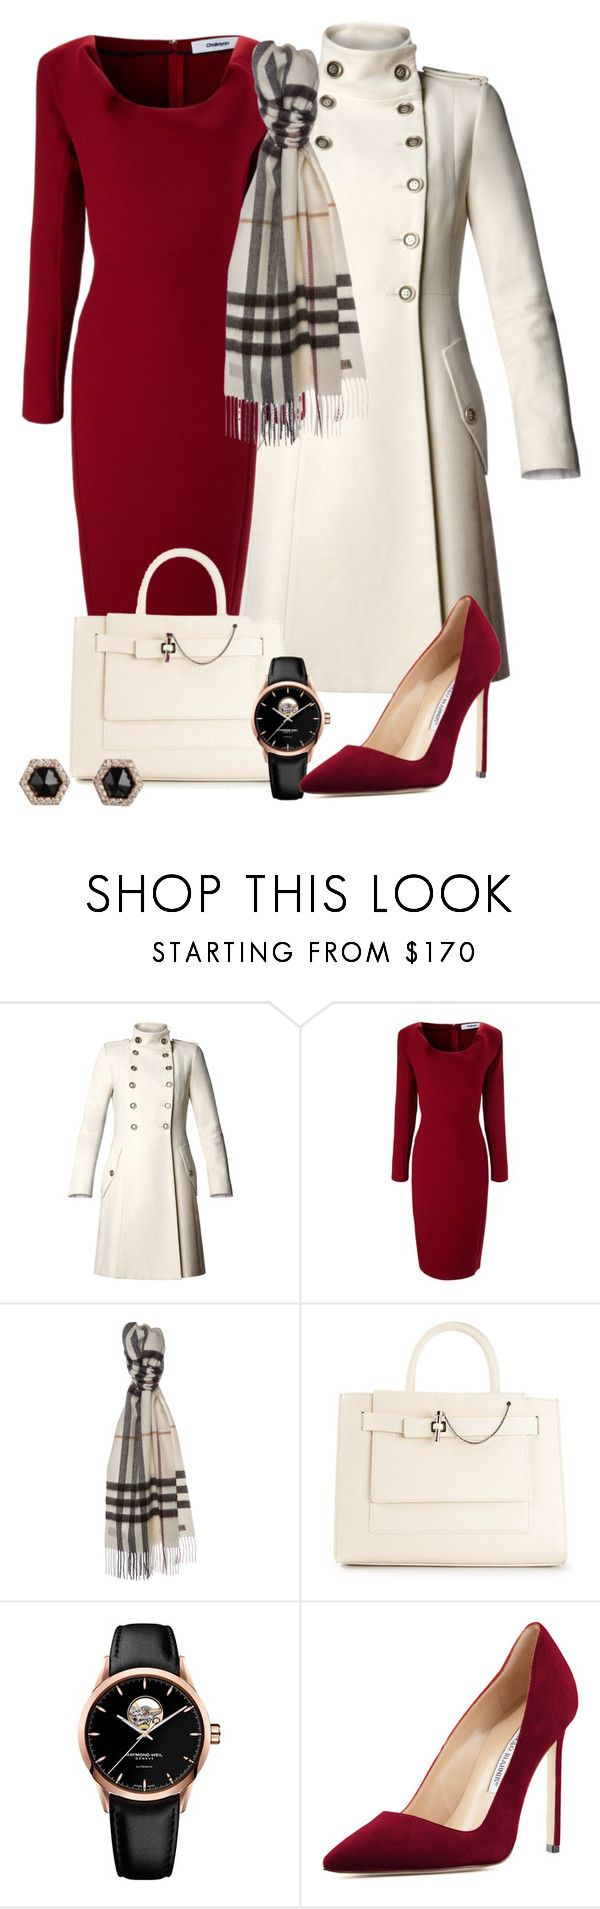 """Olivia Pope Re-styling"" by habiba11 ❤ liked on Polyvore featuring MANGO, Chalayan, Burberry, Carven, Raymond Weil, Manolo Blahnik and Monique Péan"